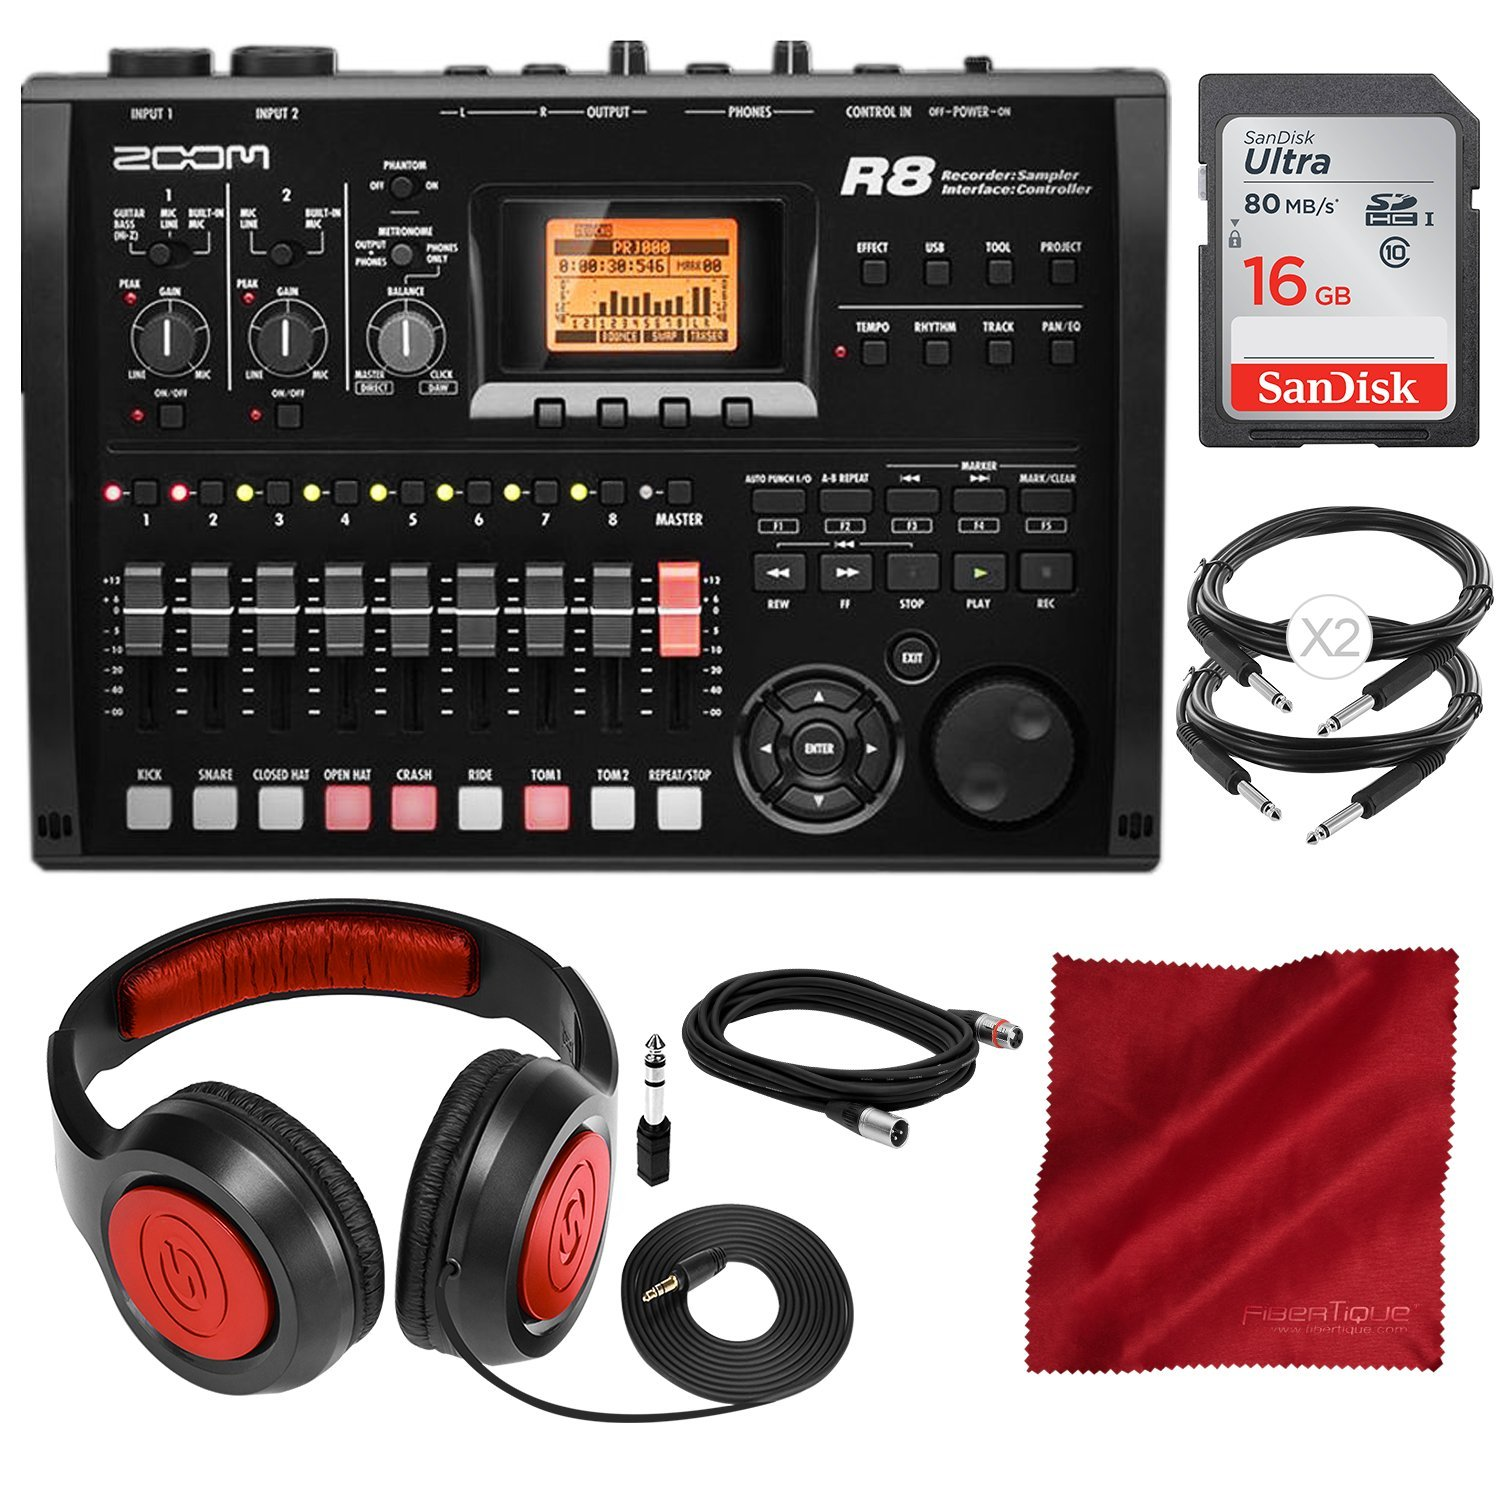 Zoom R8 Multi-Track Digital Recorder/Interface/Controller/Sampler with 16GB SD Card, Samson Headphones, and Accessory Bundle